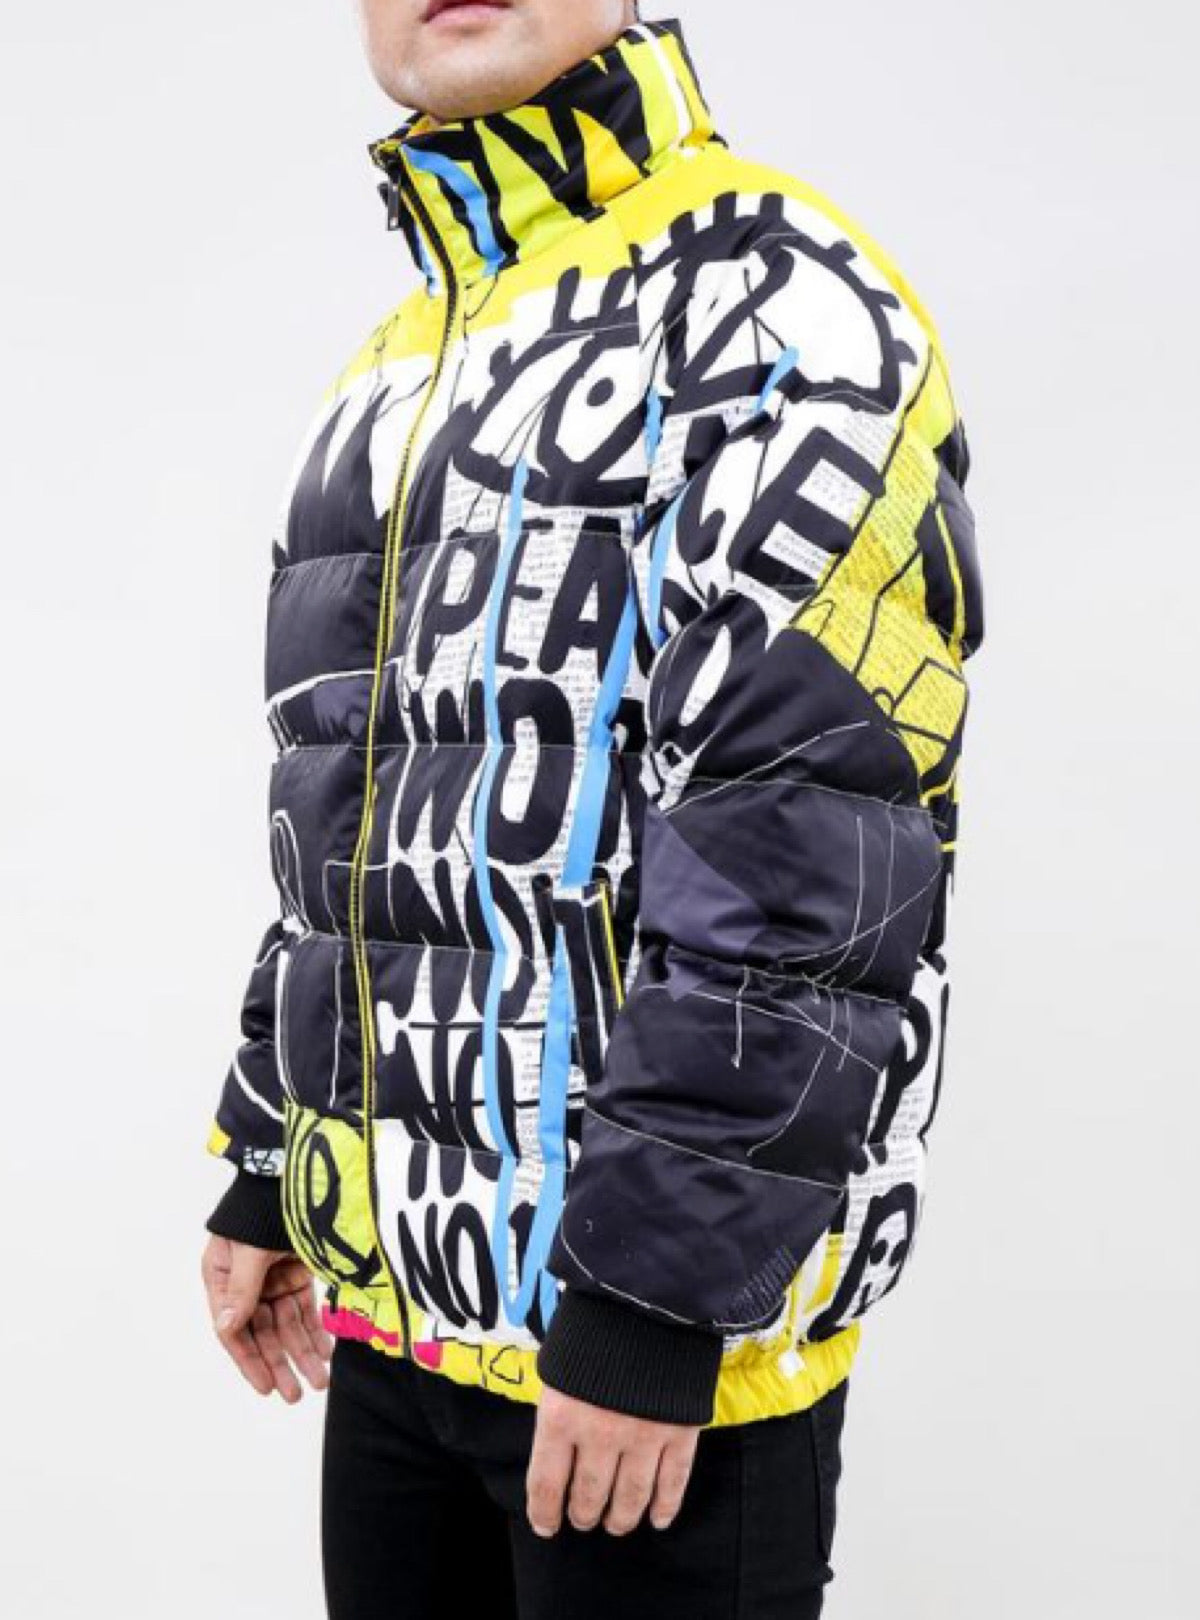 Eternity Puffer Jacket - Expression Crown - Multi - E6133380-MUL-MX